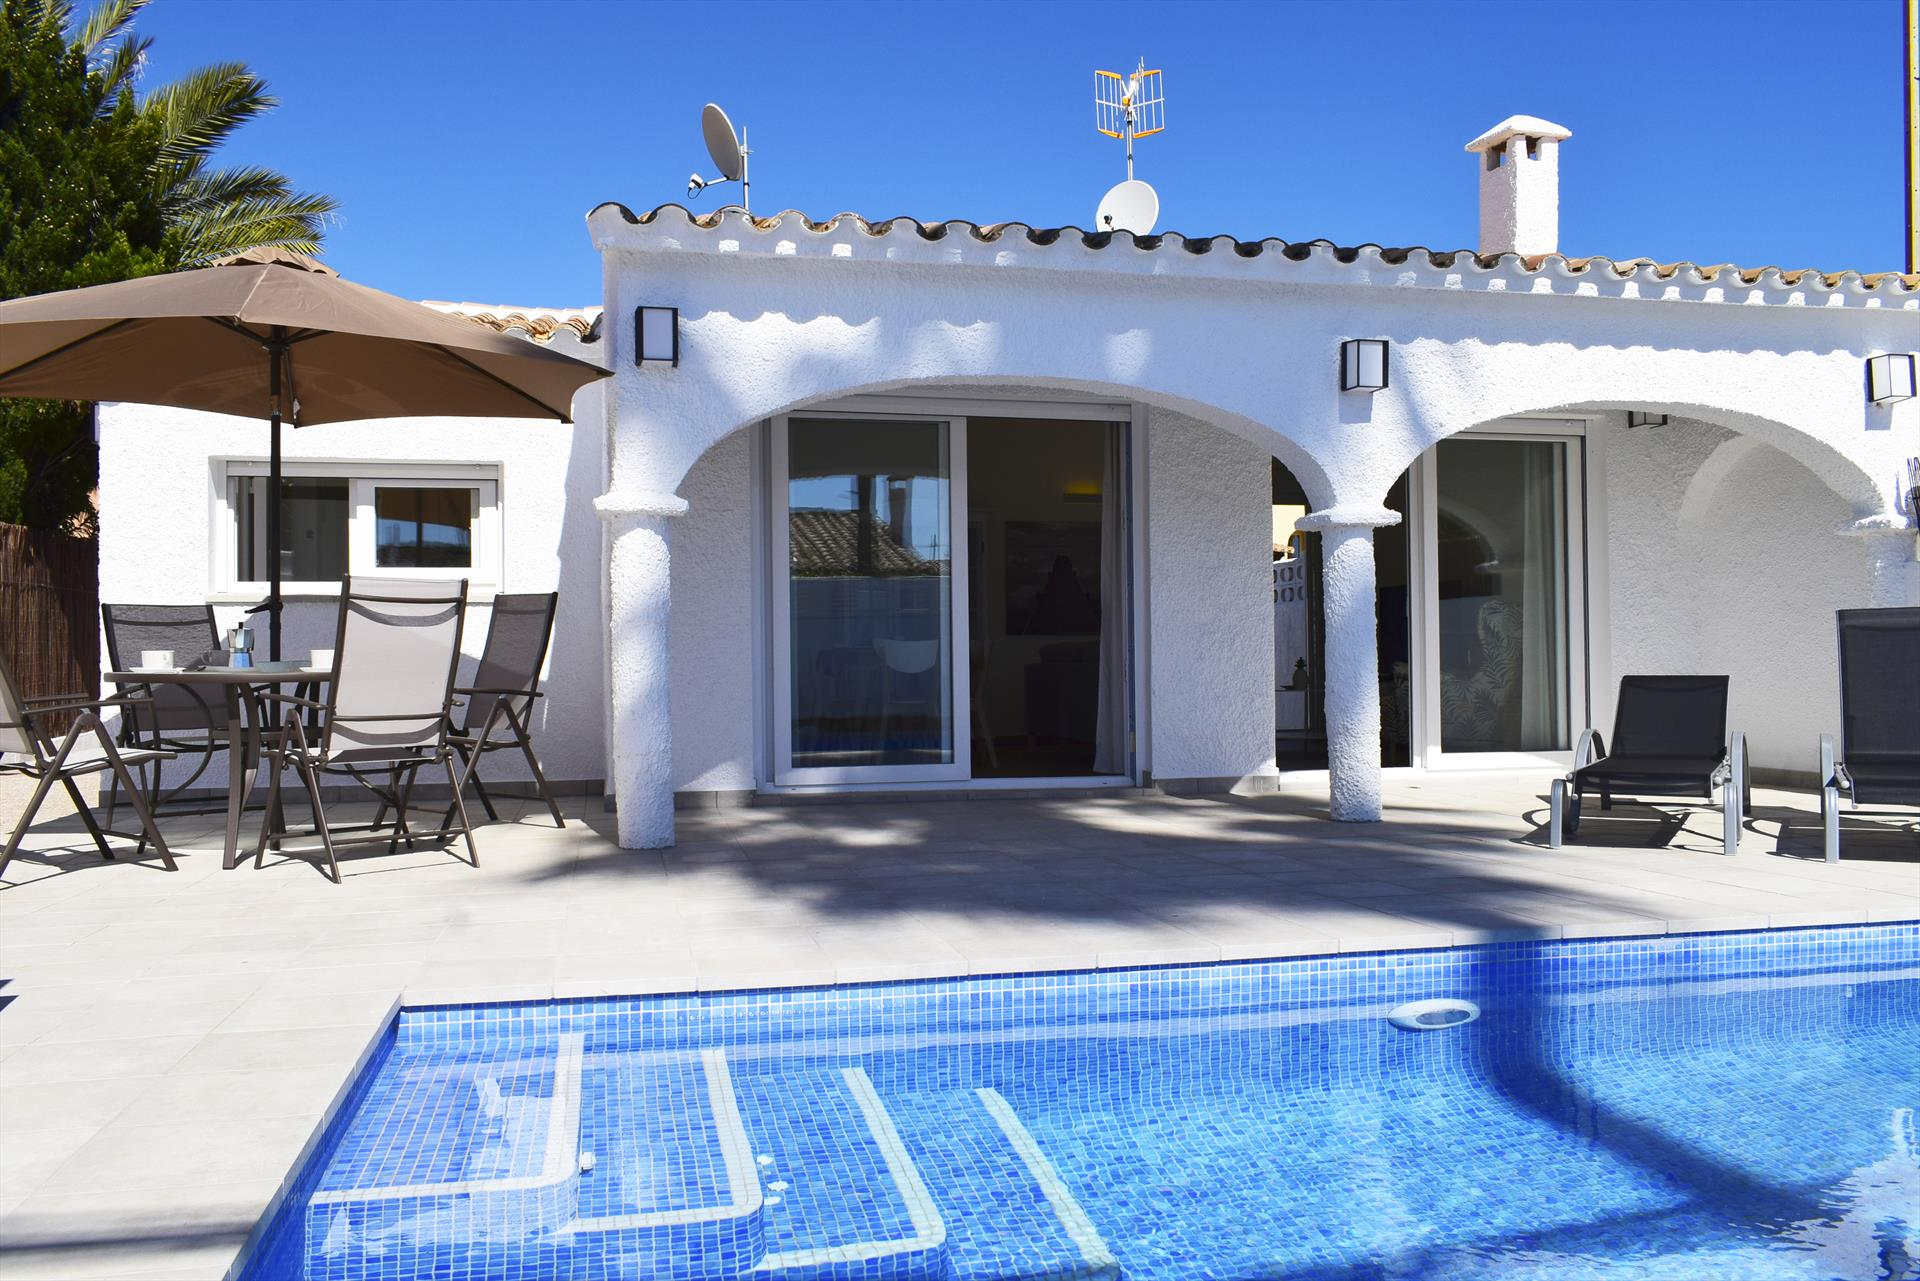 CH3200 Parcela y Piscina privada  c Bacalla, Wonderful and cheerful holiday house in Denia, on the Costa Blanca, Spain  with private pool for 6 persons.....